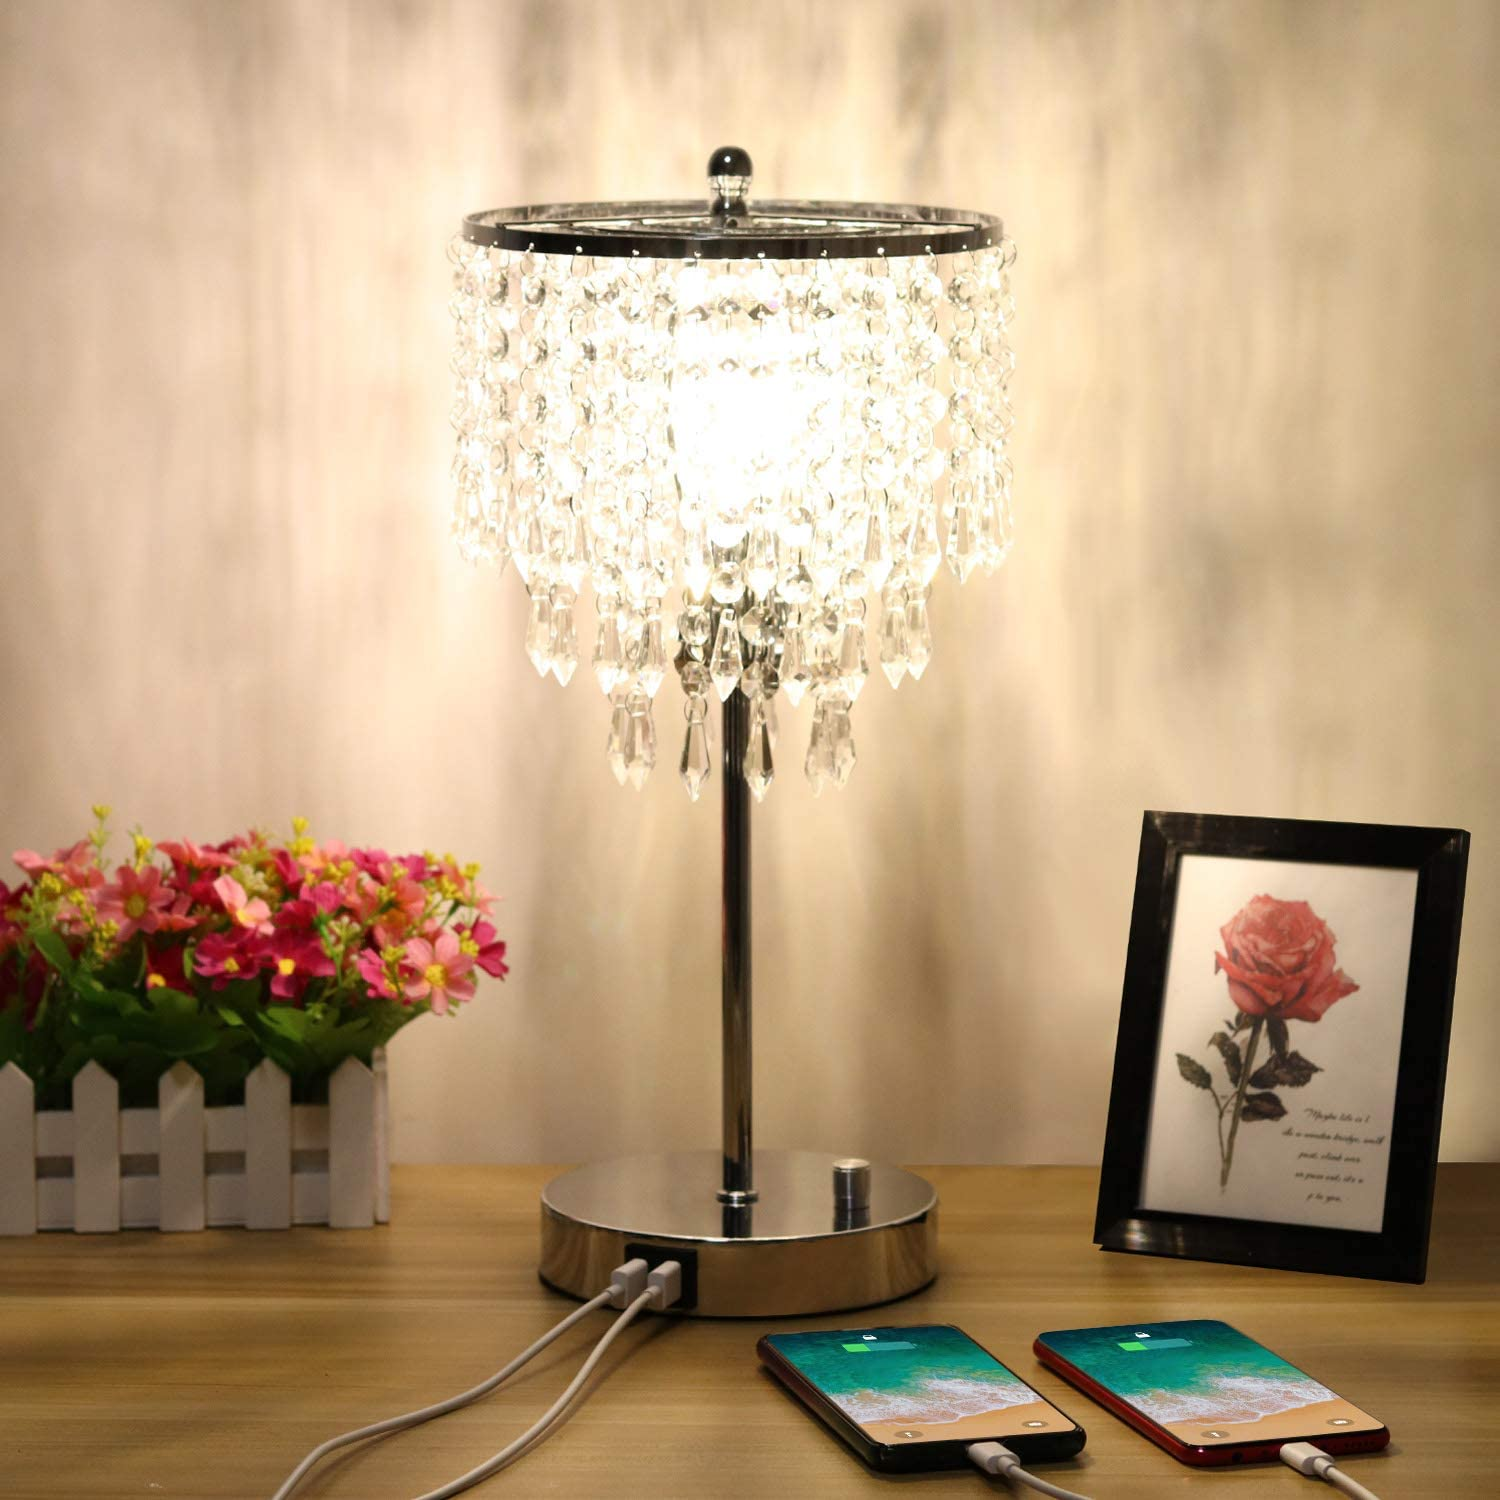 Zermurd Crystal Table Lamp, Stepless Dimmable Crystal Bedside Lamp with Dual USB Ports Decorative Elegant Lamp Beautiful Nightstand Lamp for Living Room Bedroom Dressing Room, B11 6W LED Bulb Included